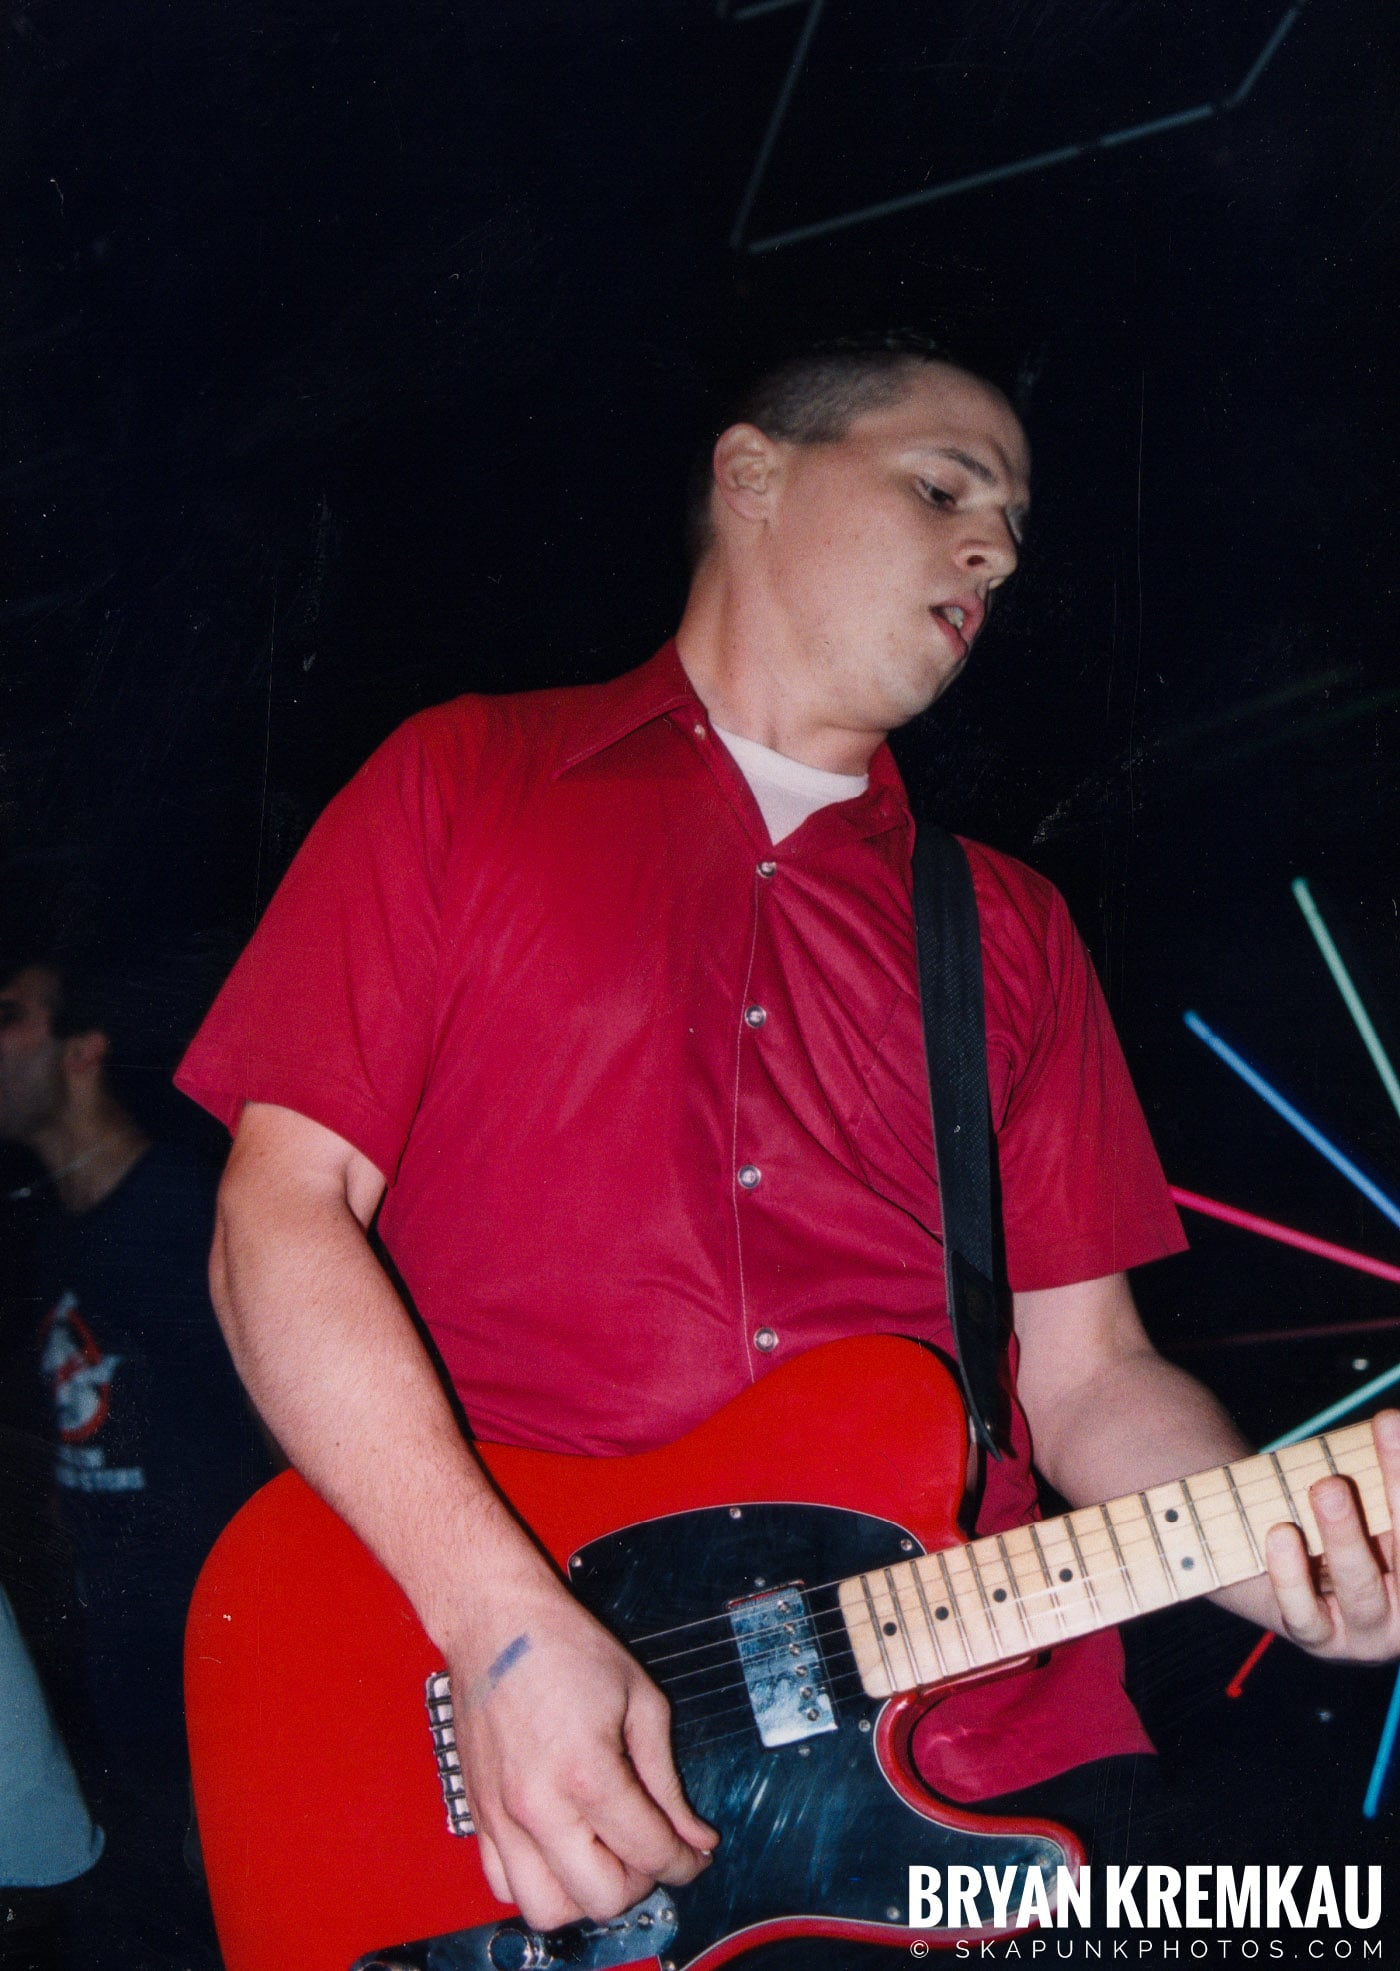 Edna's Goldfish @ Skater's World, Wayne, NJ - 11.7.98 (6)